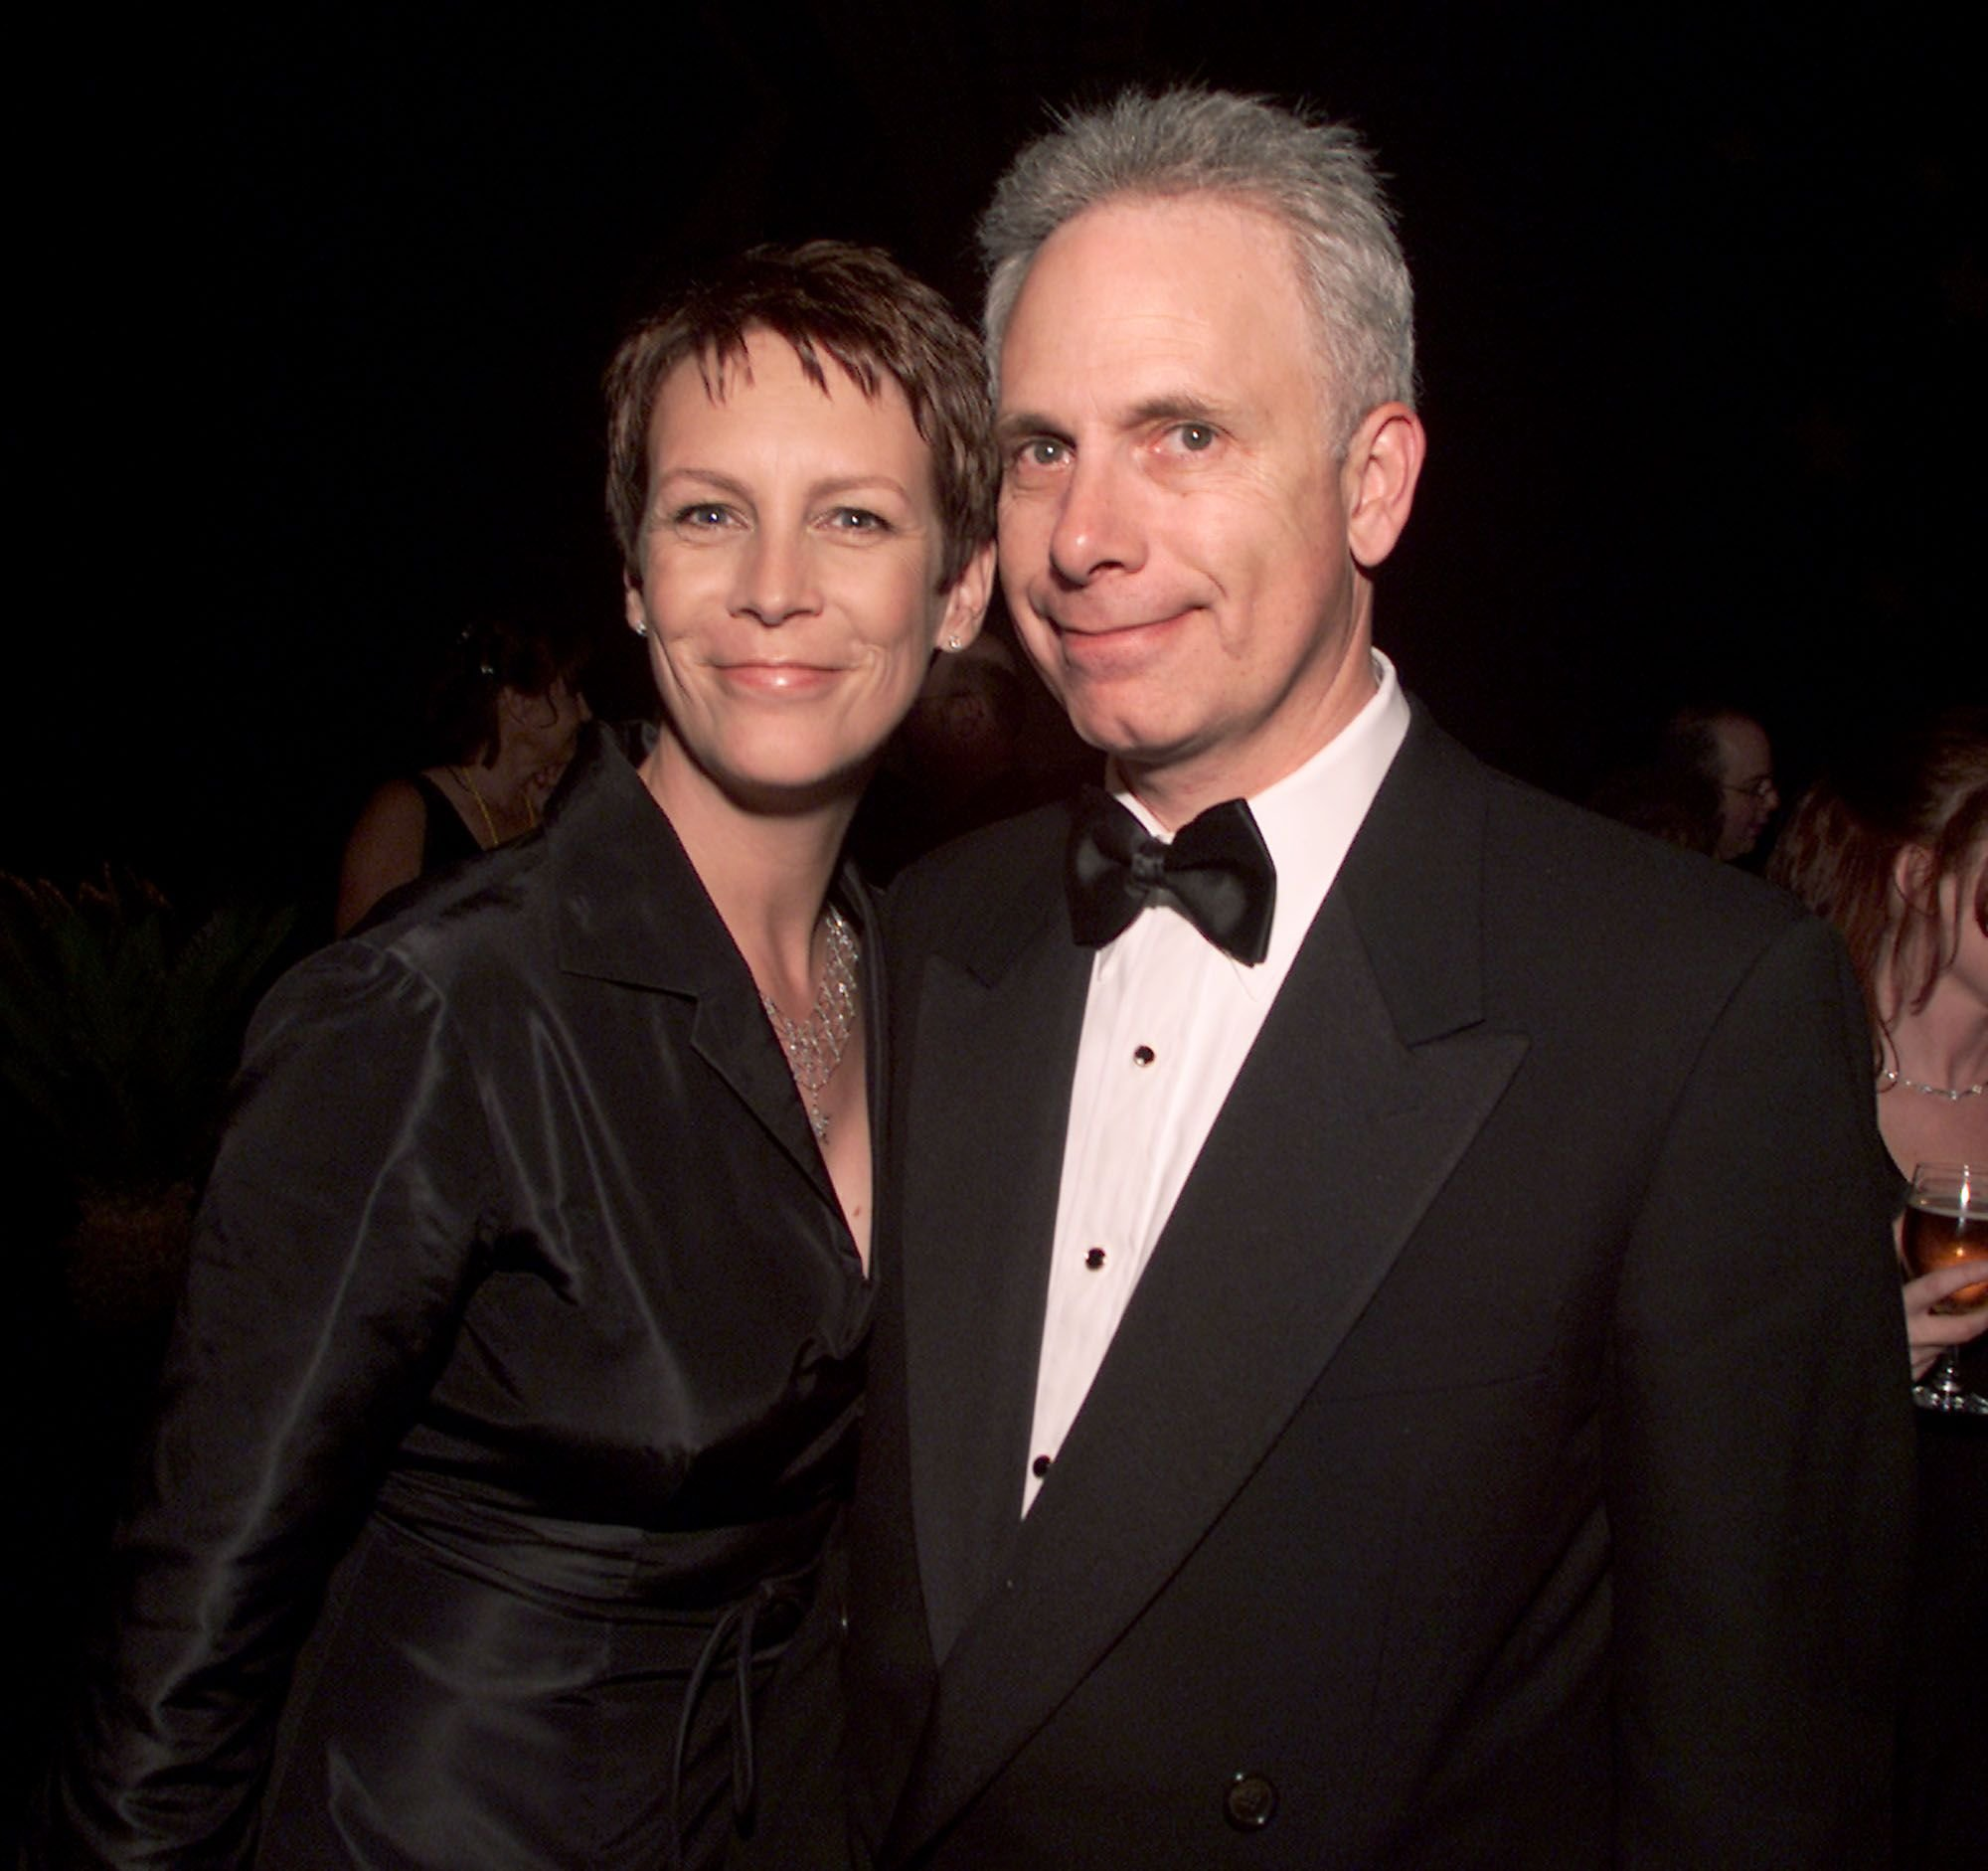 Jamie Lee Curtis with husband Christopher Guest at Comedy Central's post-party after the 15th Annual American Comedy Awards in  Los Angeles, California   Photo: Kevin Winter/Getty Images